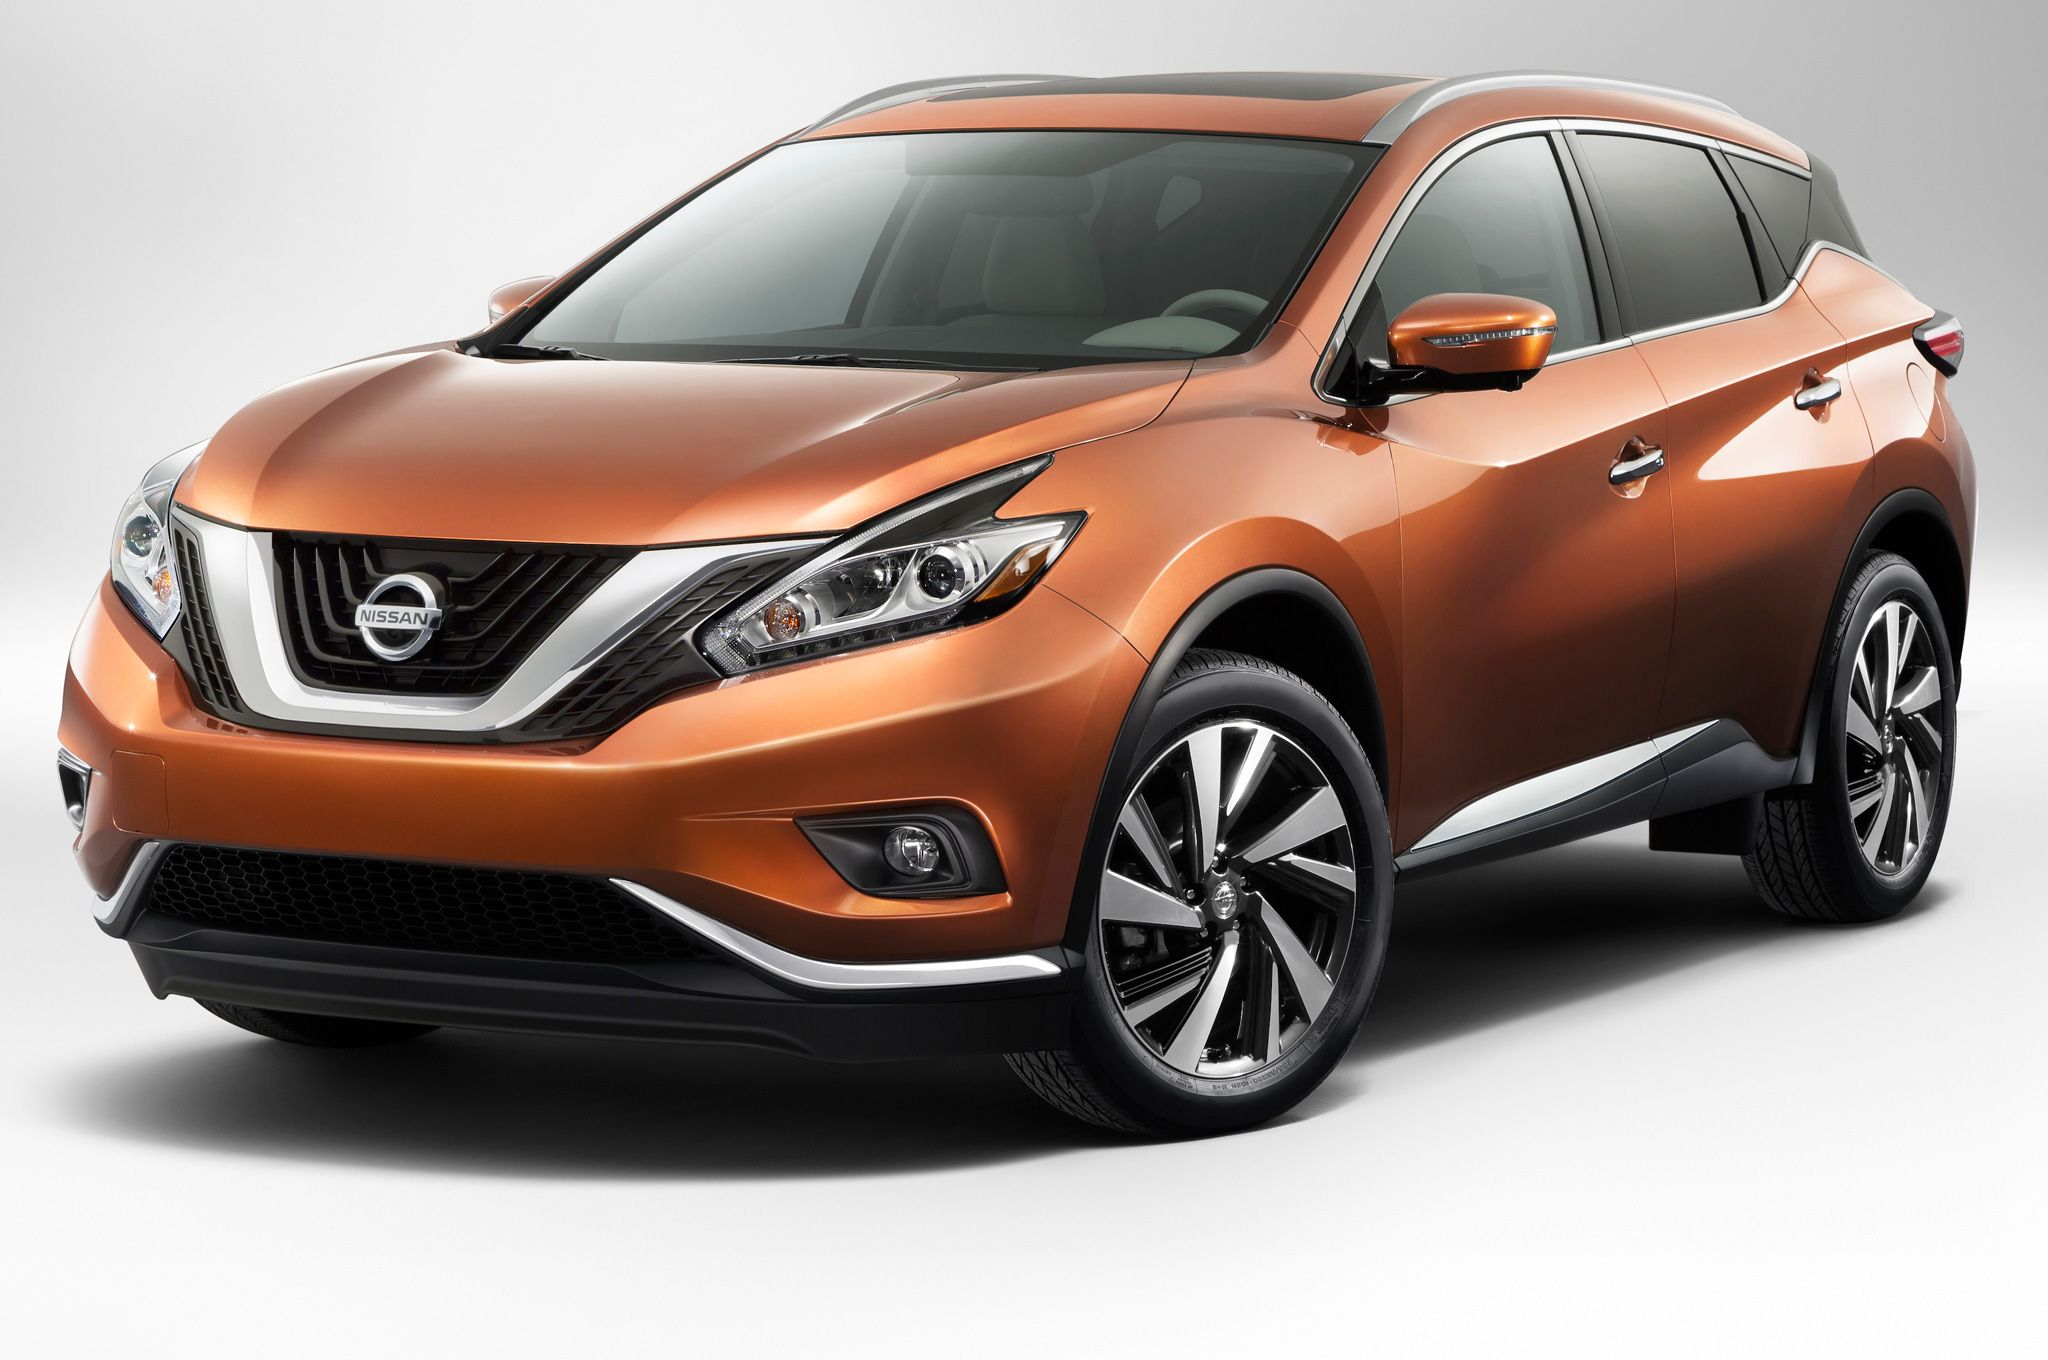 sale new nissan offers finance whiteside lease zoom pearl view rogue price hd wa for auburn specials